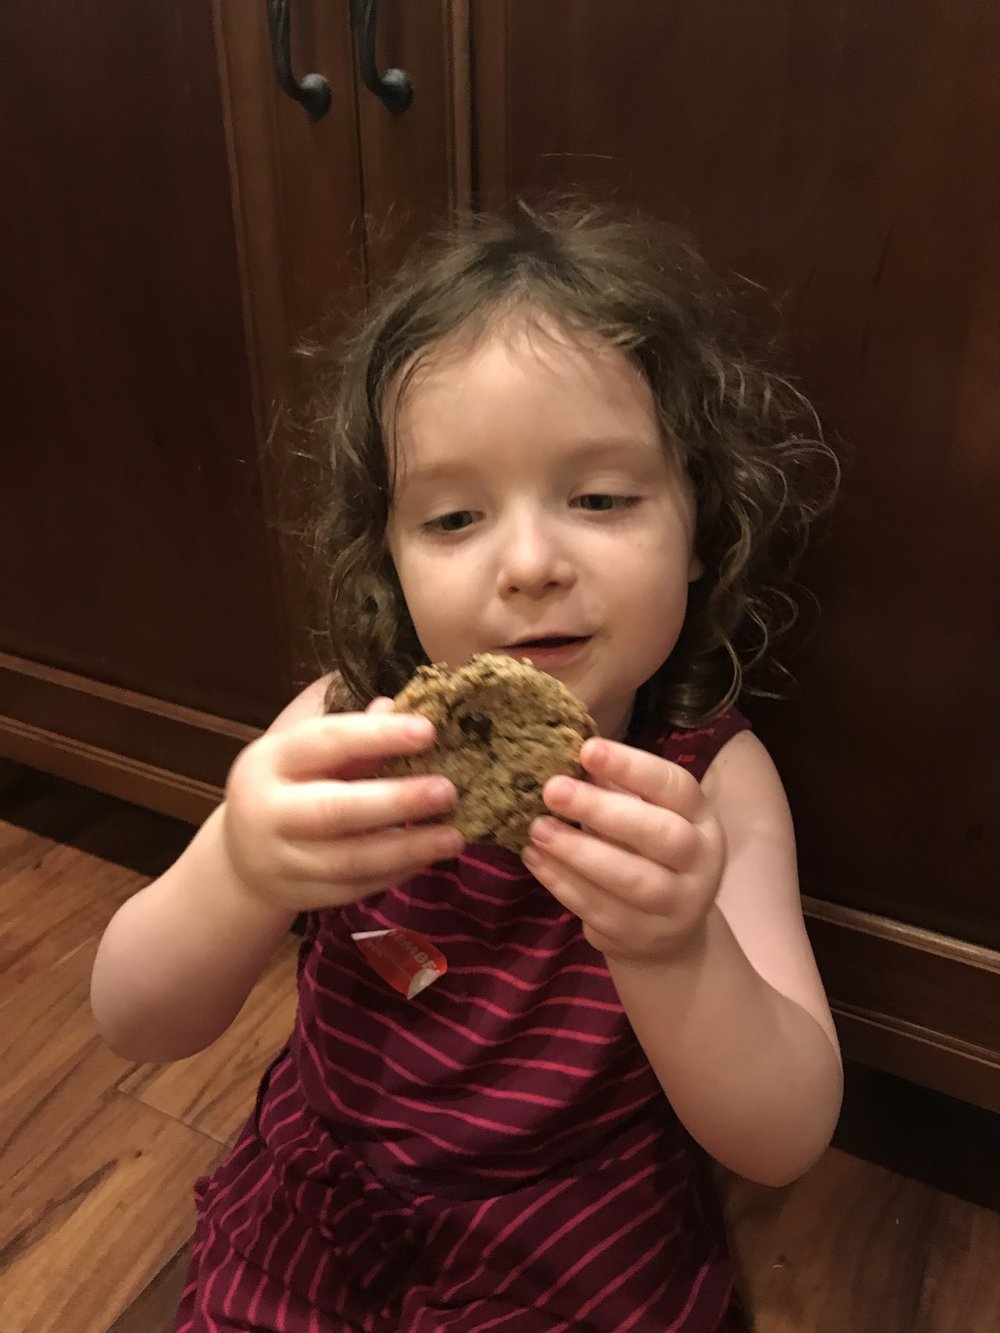 Cookies are Cora approved! -